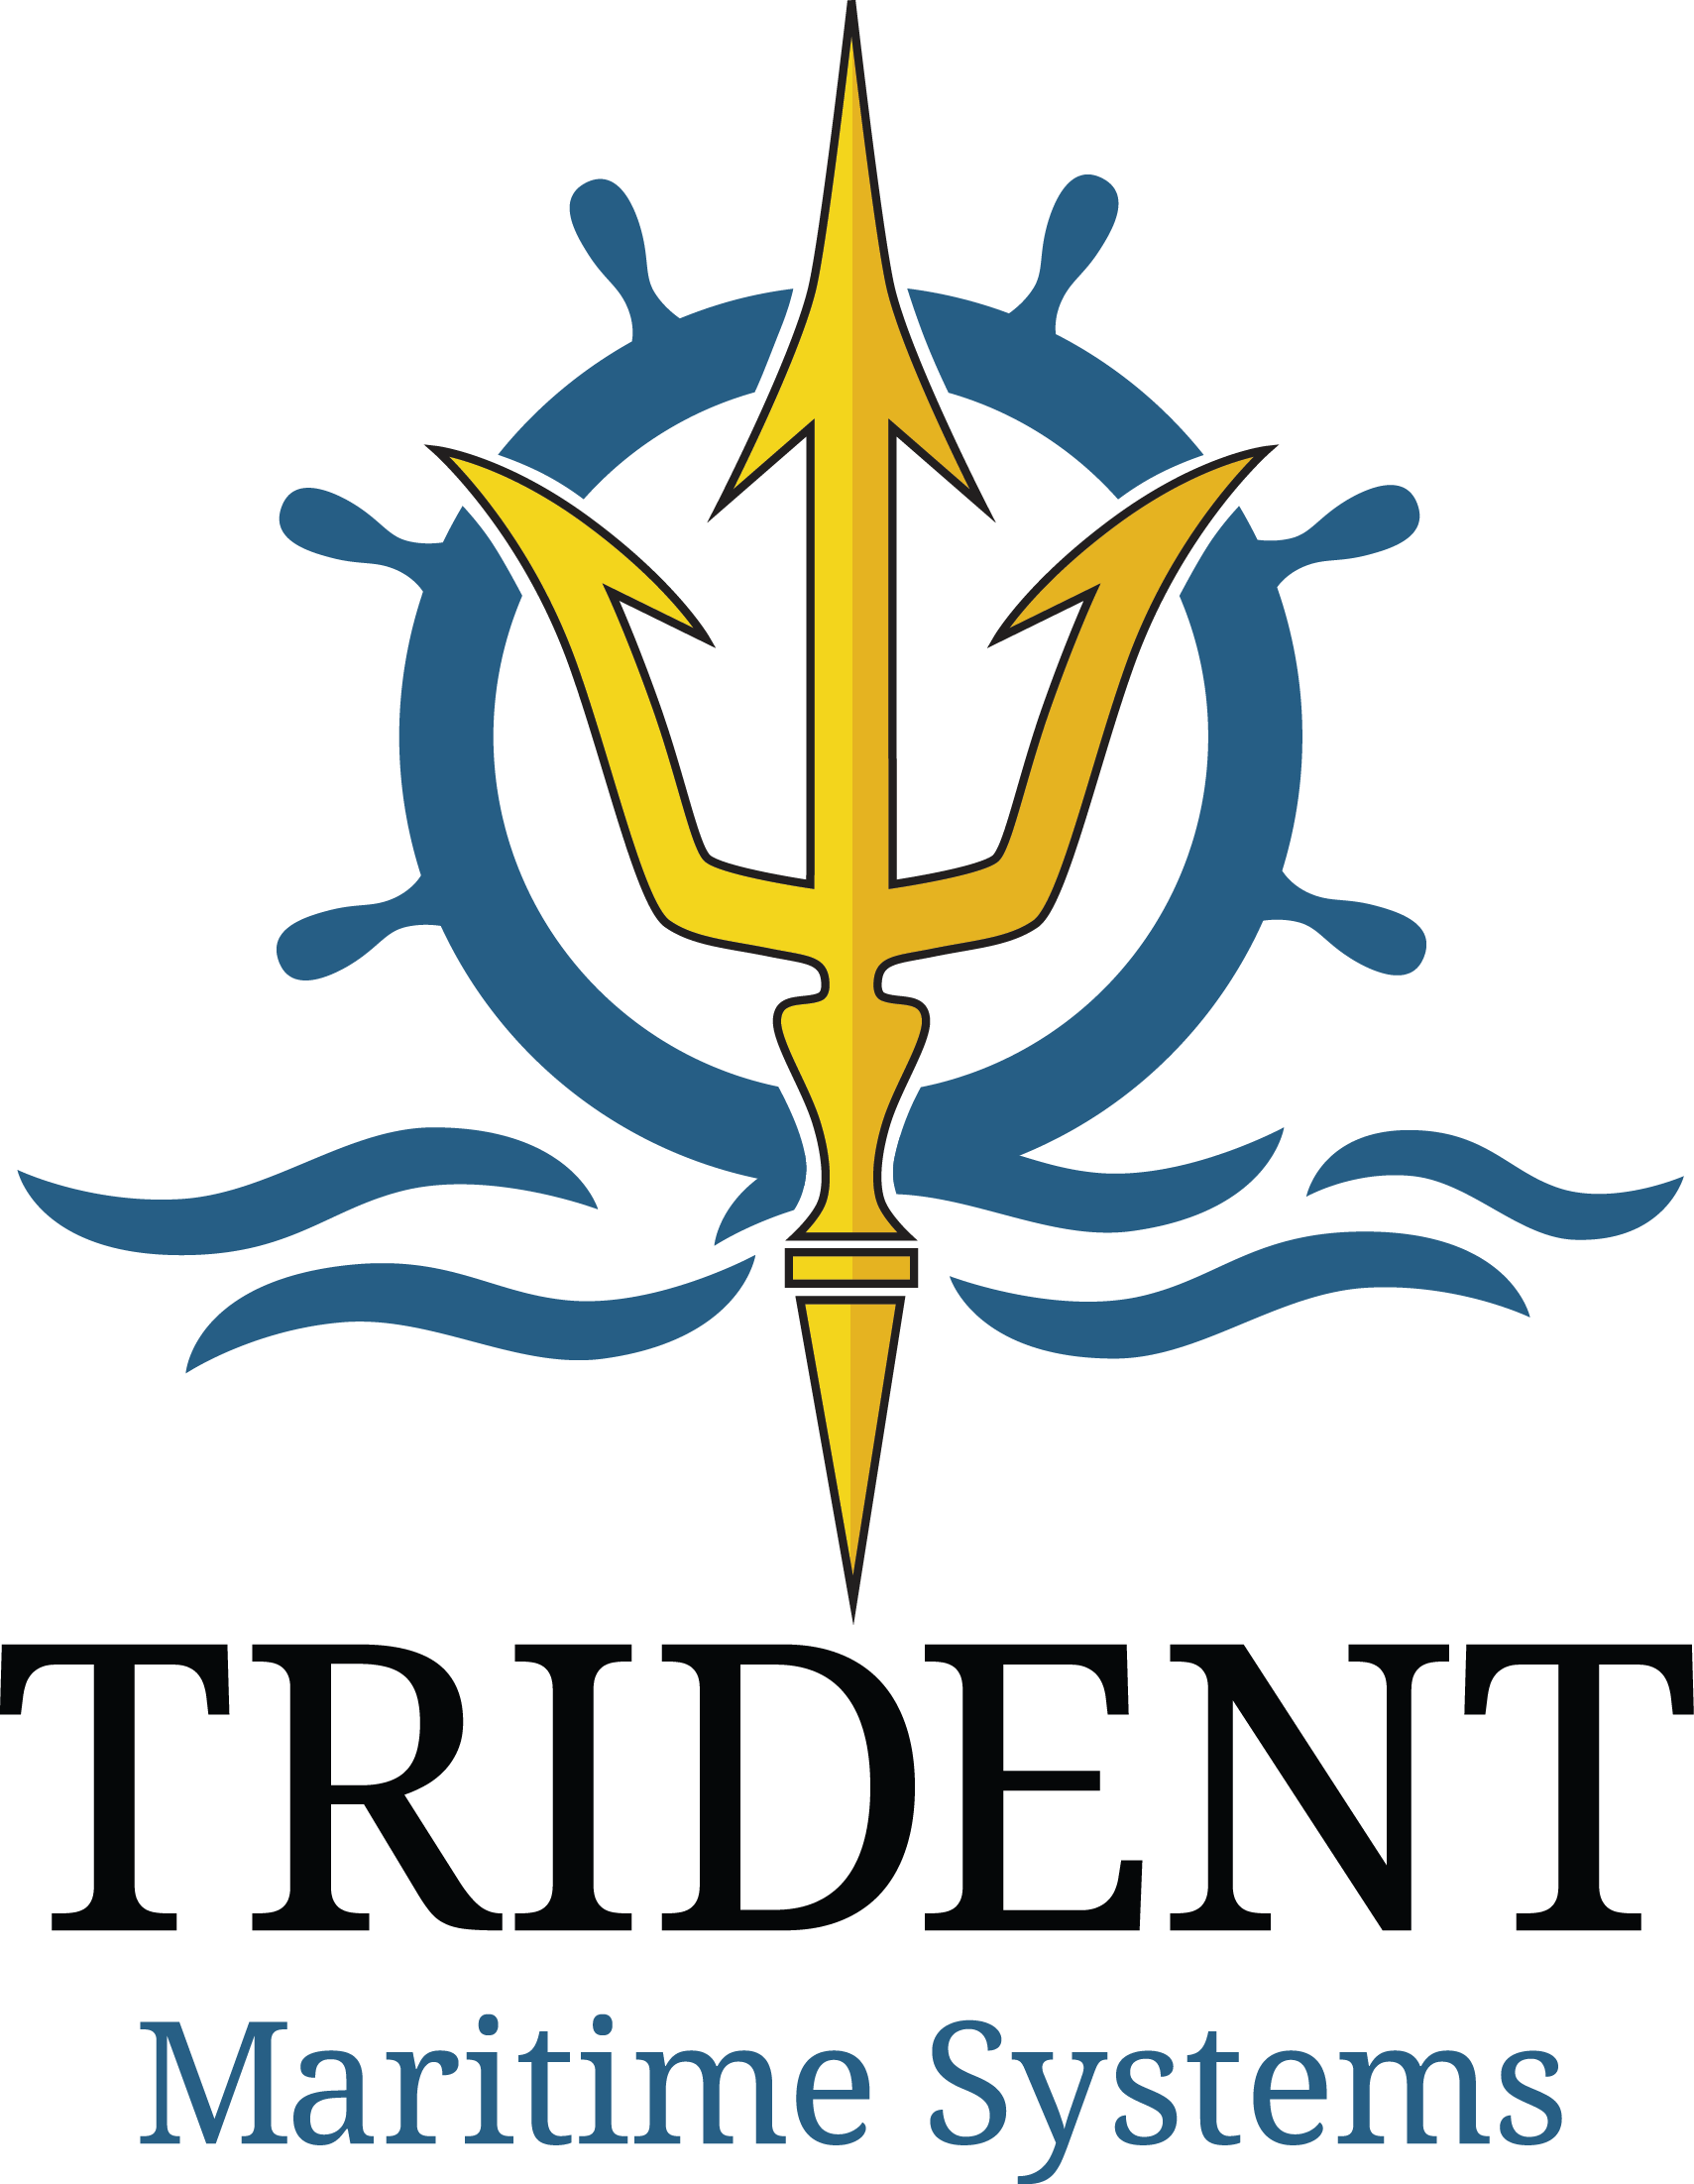 Trident Maritime Systems Announces Definitive Agreement to Acquire Callenberg Technology Group, August 15 2016